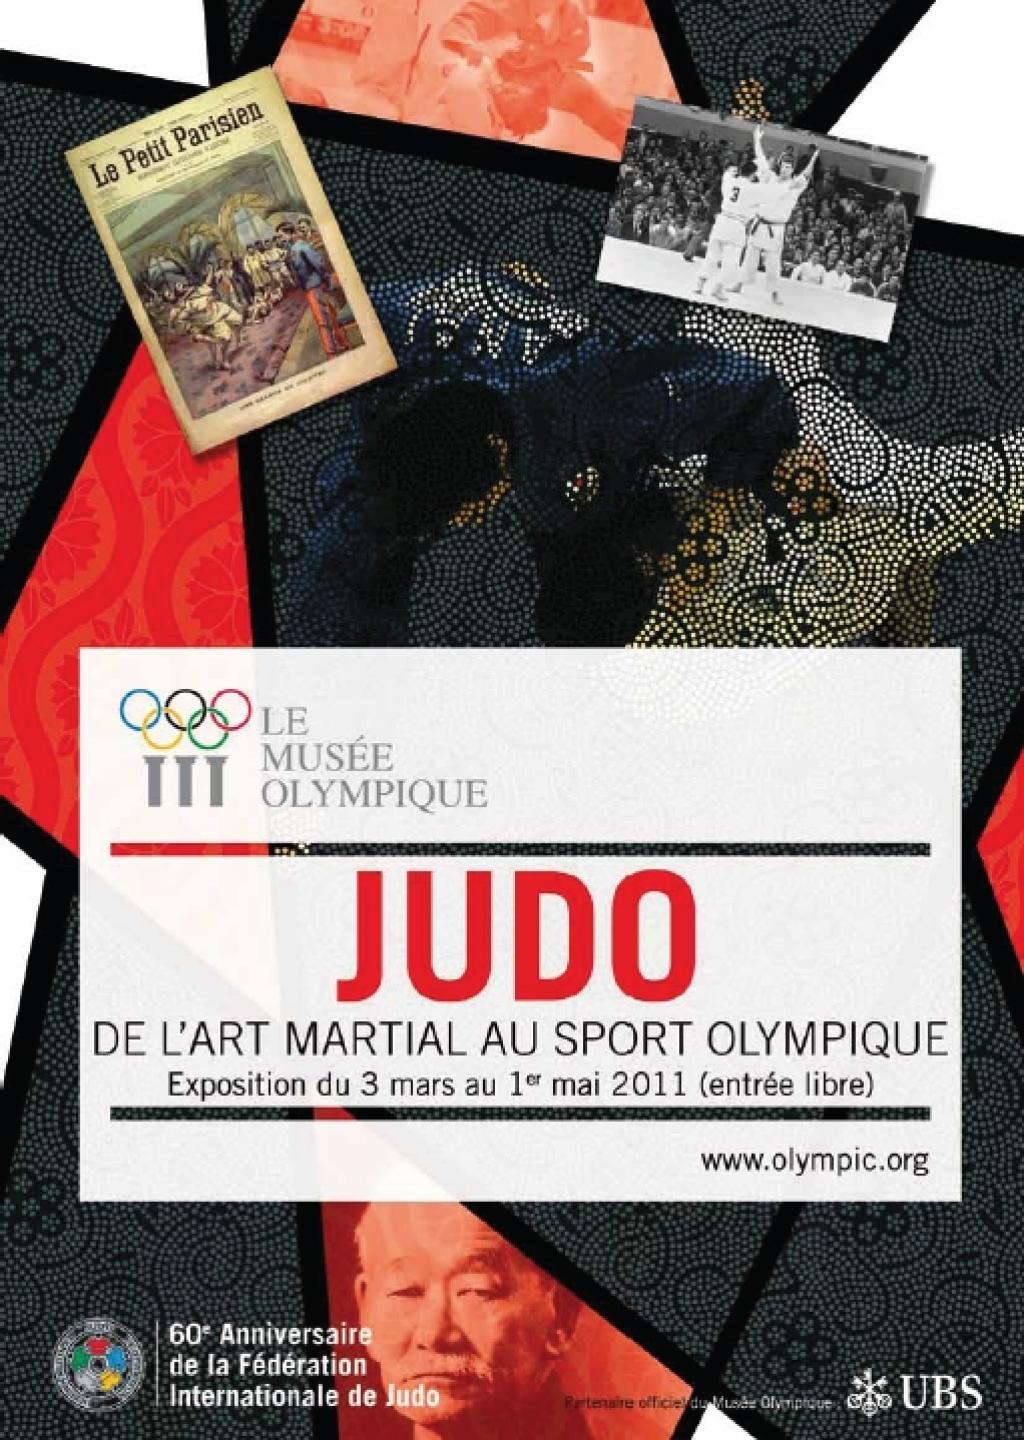 Judo: From Martial Art to Olympic Sport